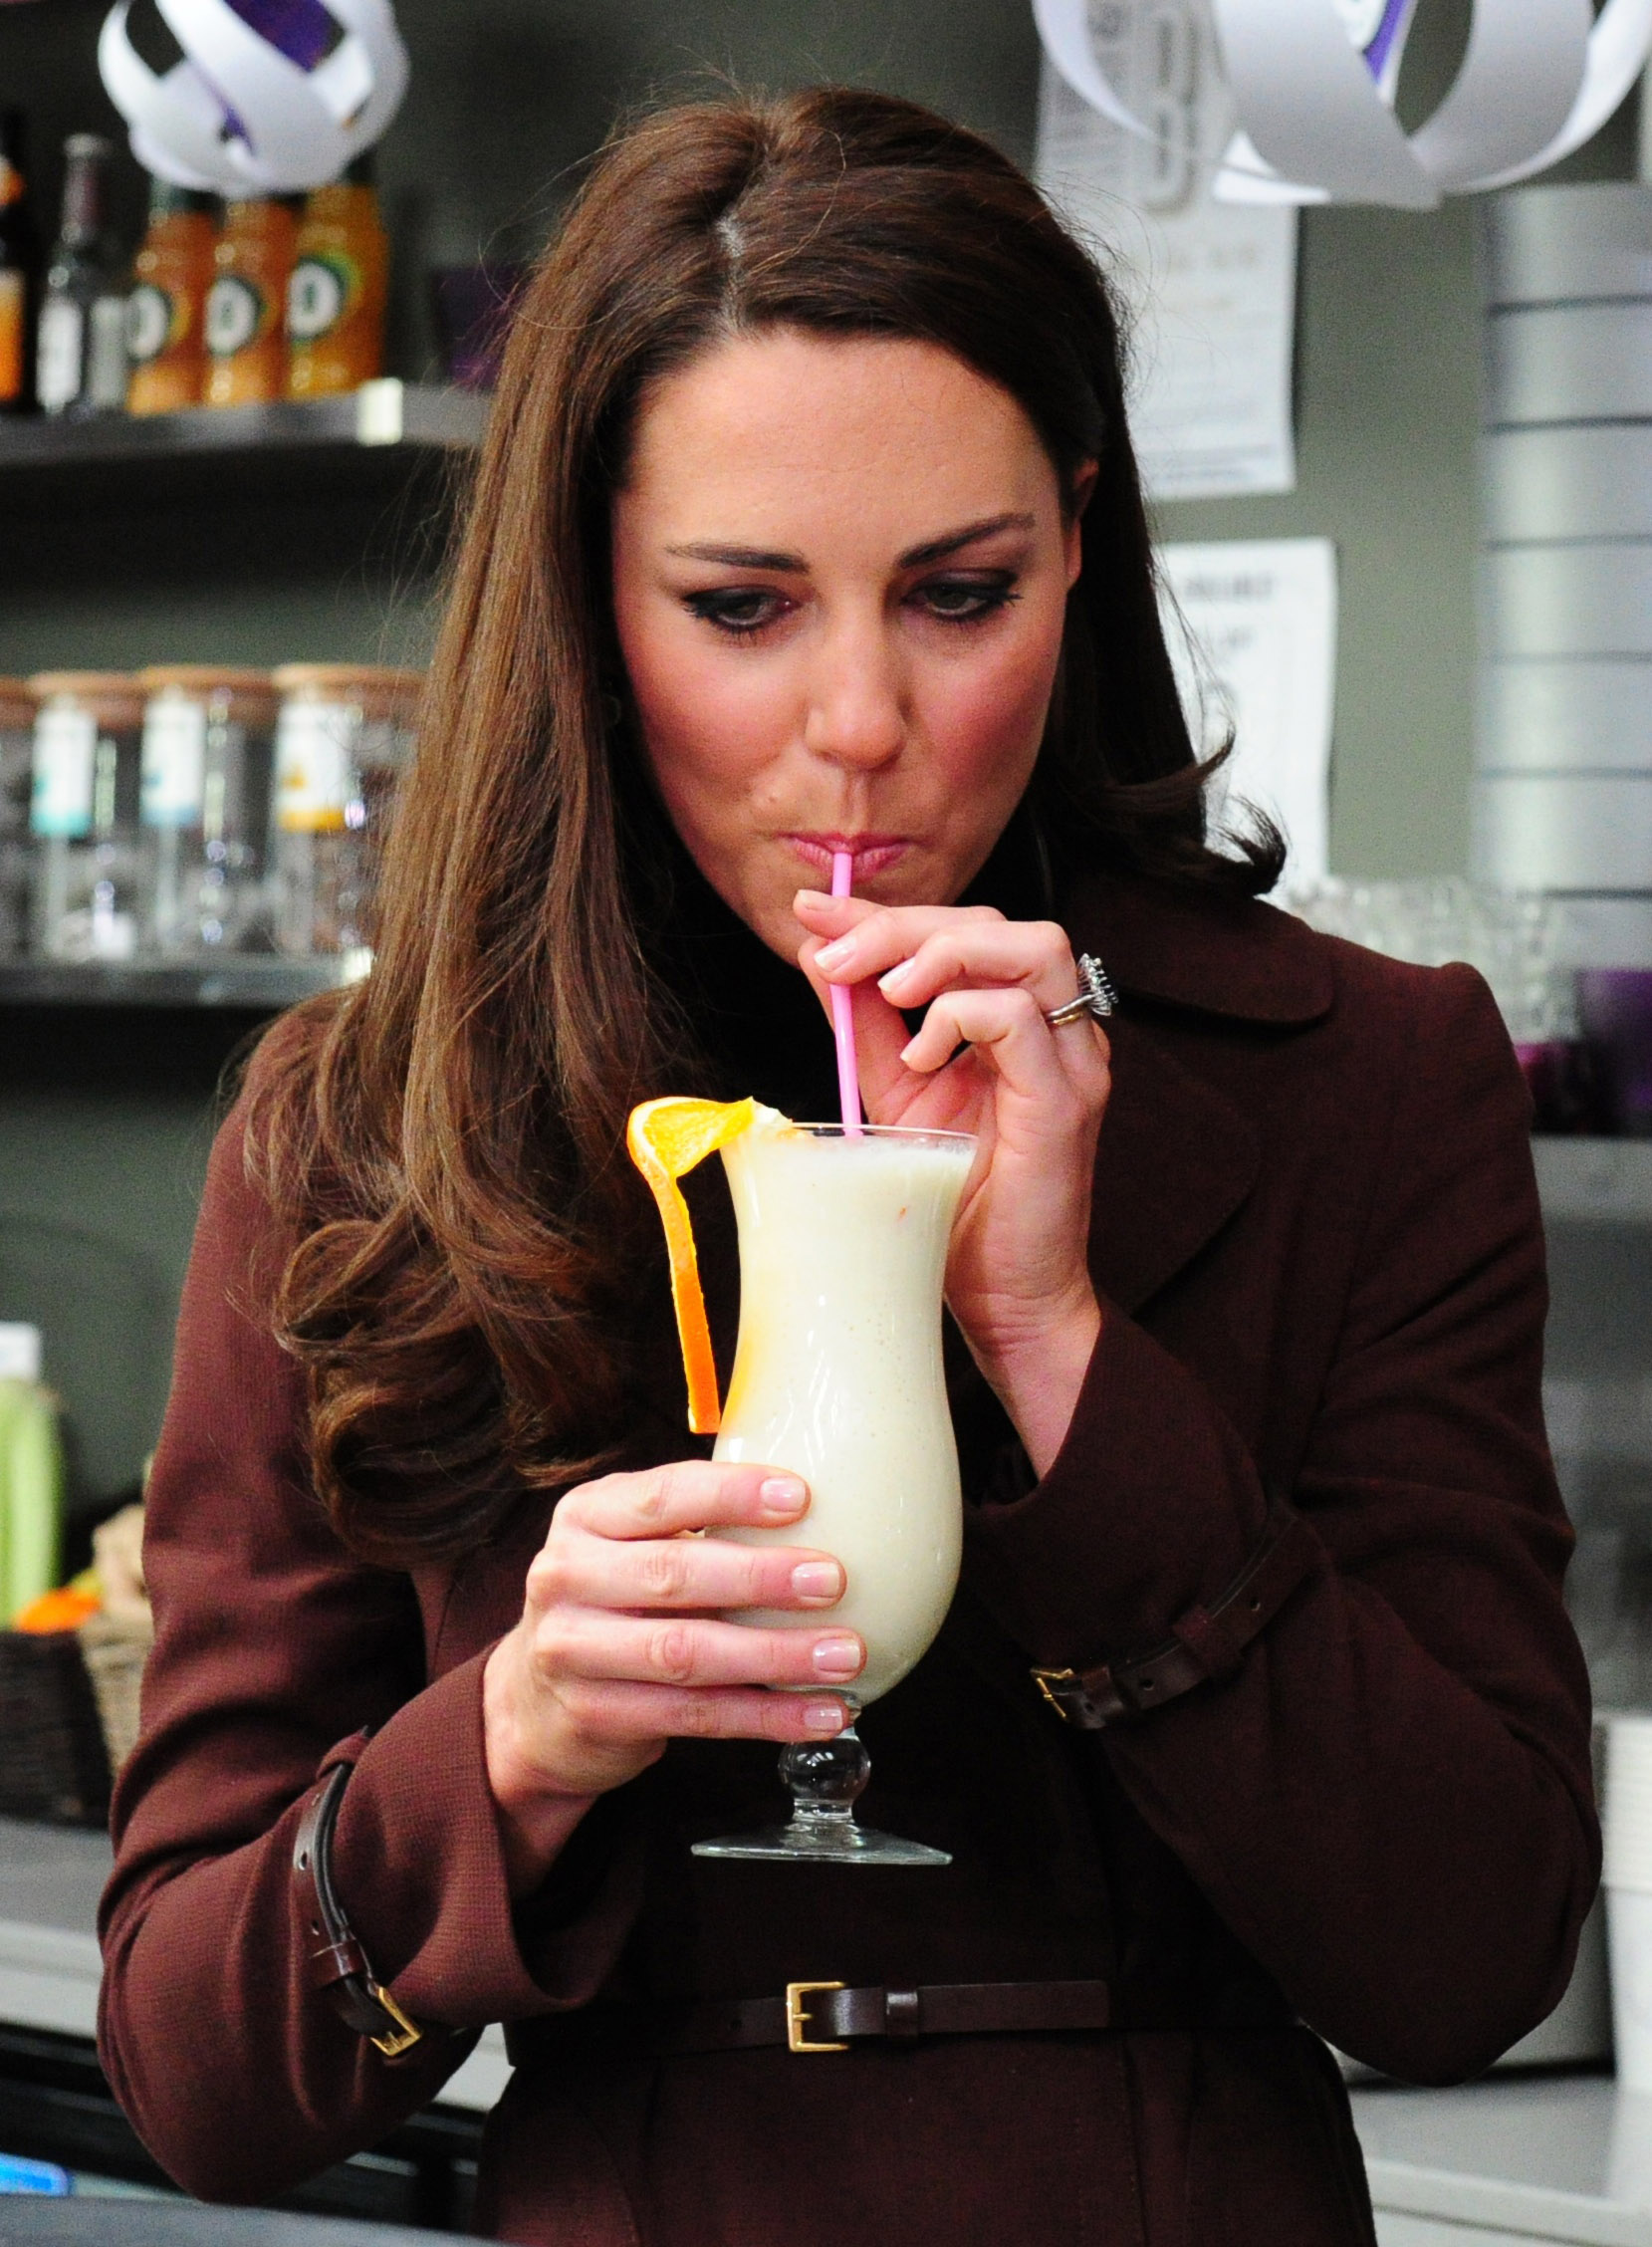 The Duchess of Cambridge visits Liverpool on Valentine's Day 2012